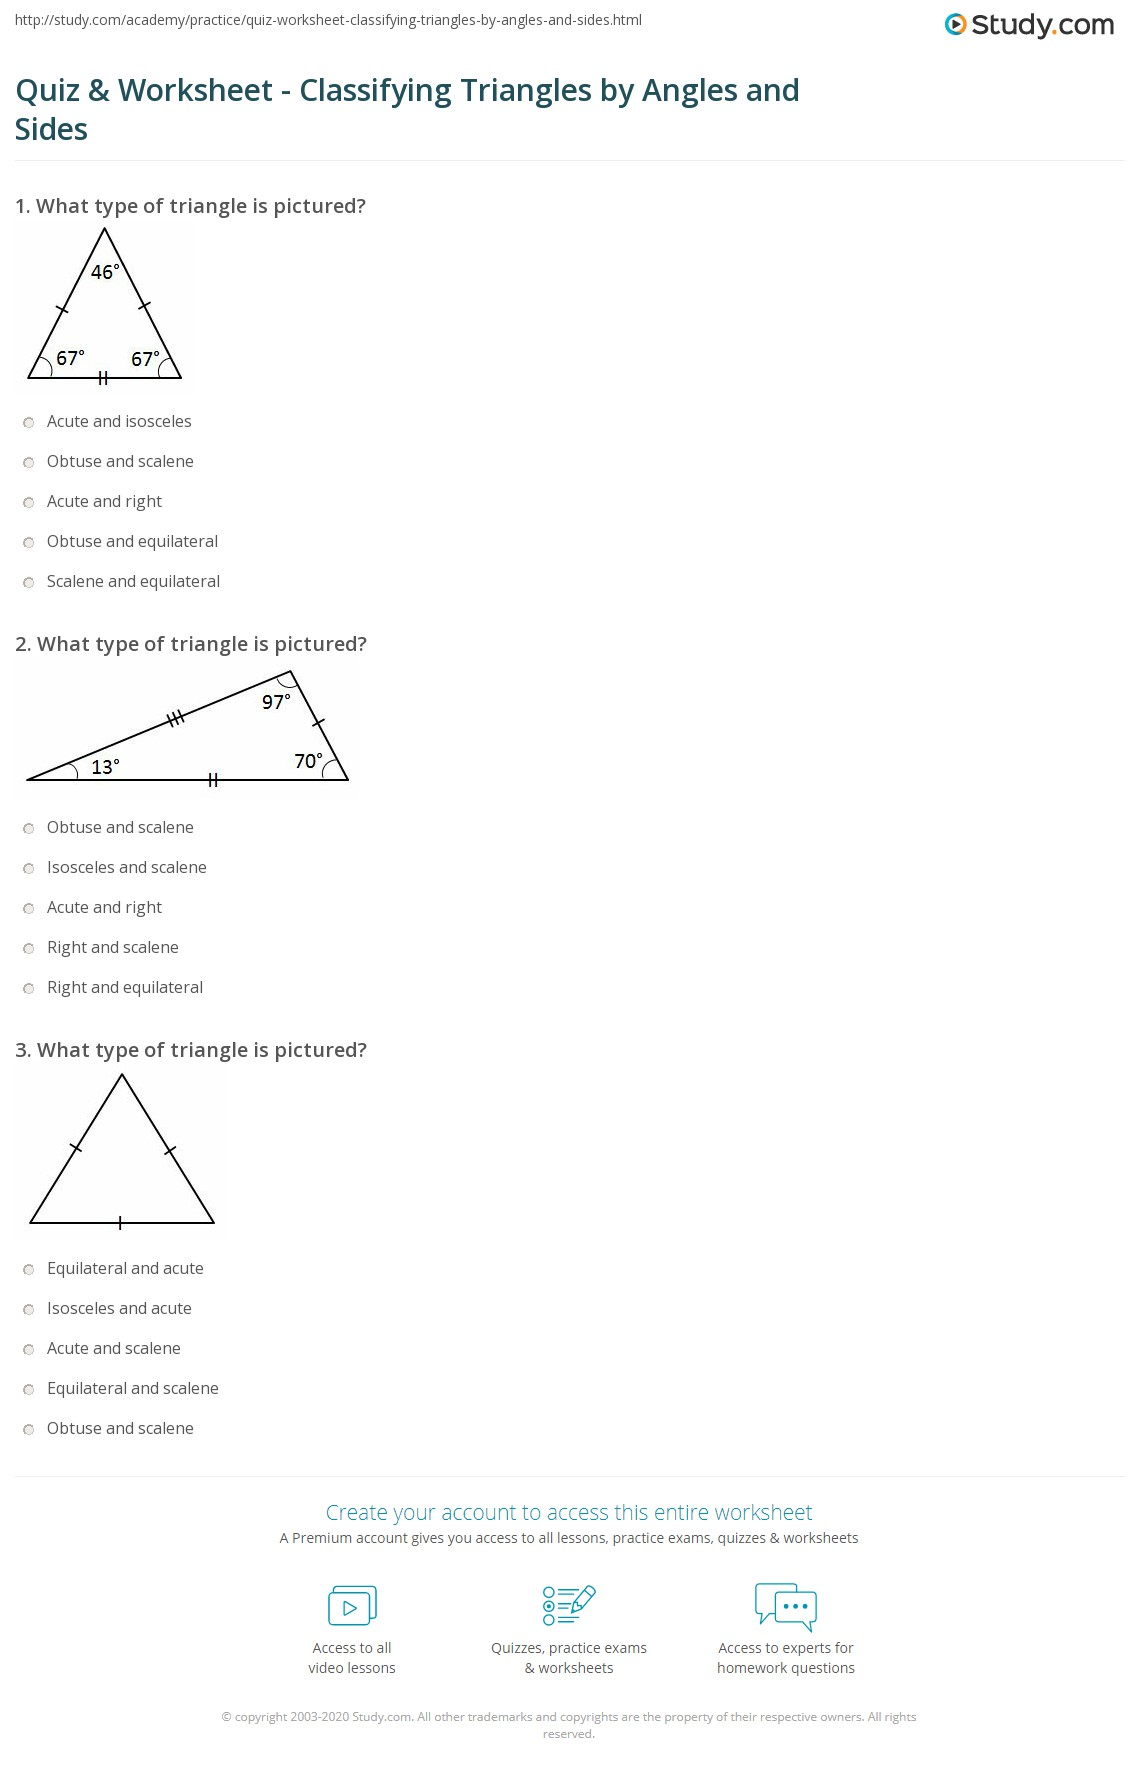 Printables Of Classifying Triangles By Angles And Sides